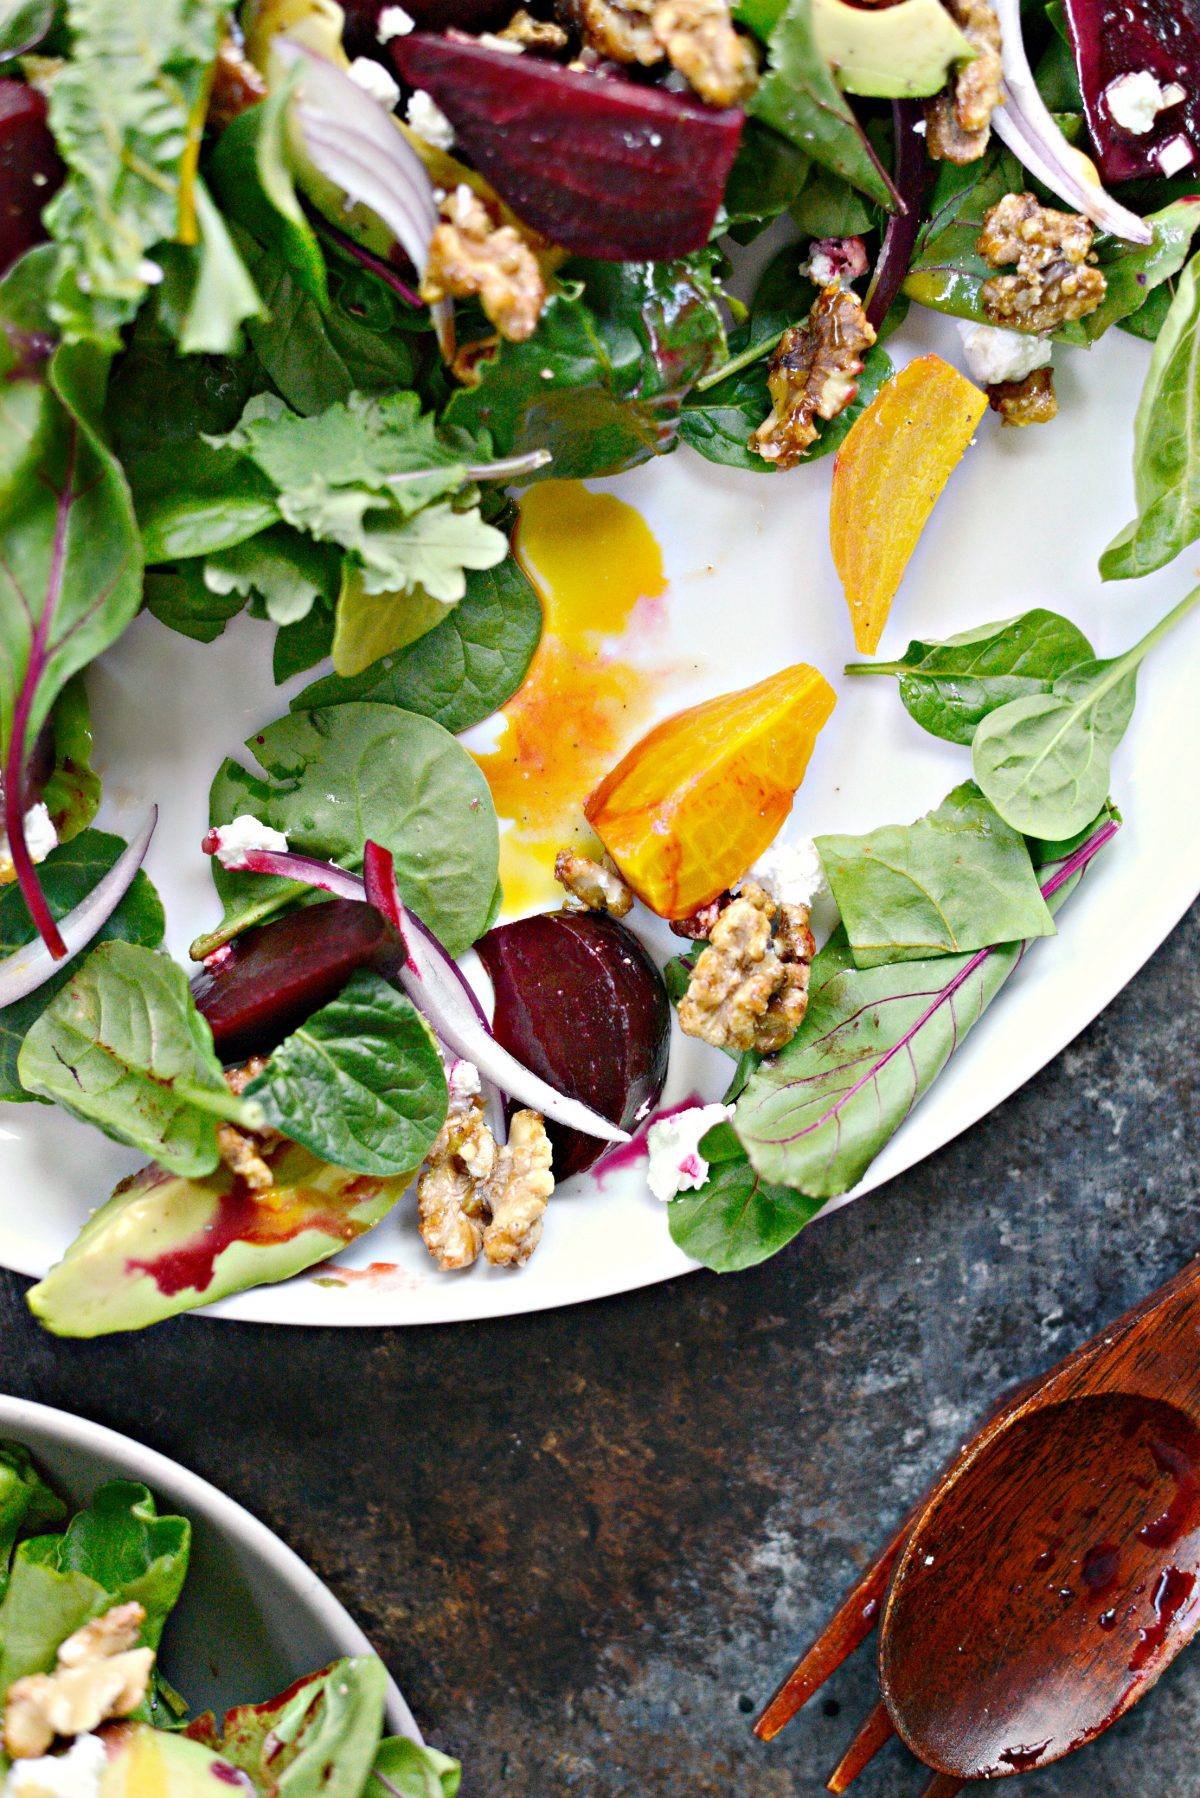 Roasted Beet Salad with Avocado, Goat Cheese And Honey Dijon Vinaigrette l SimplyScratch.com (16)